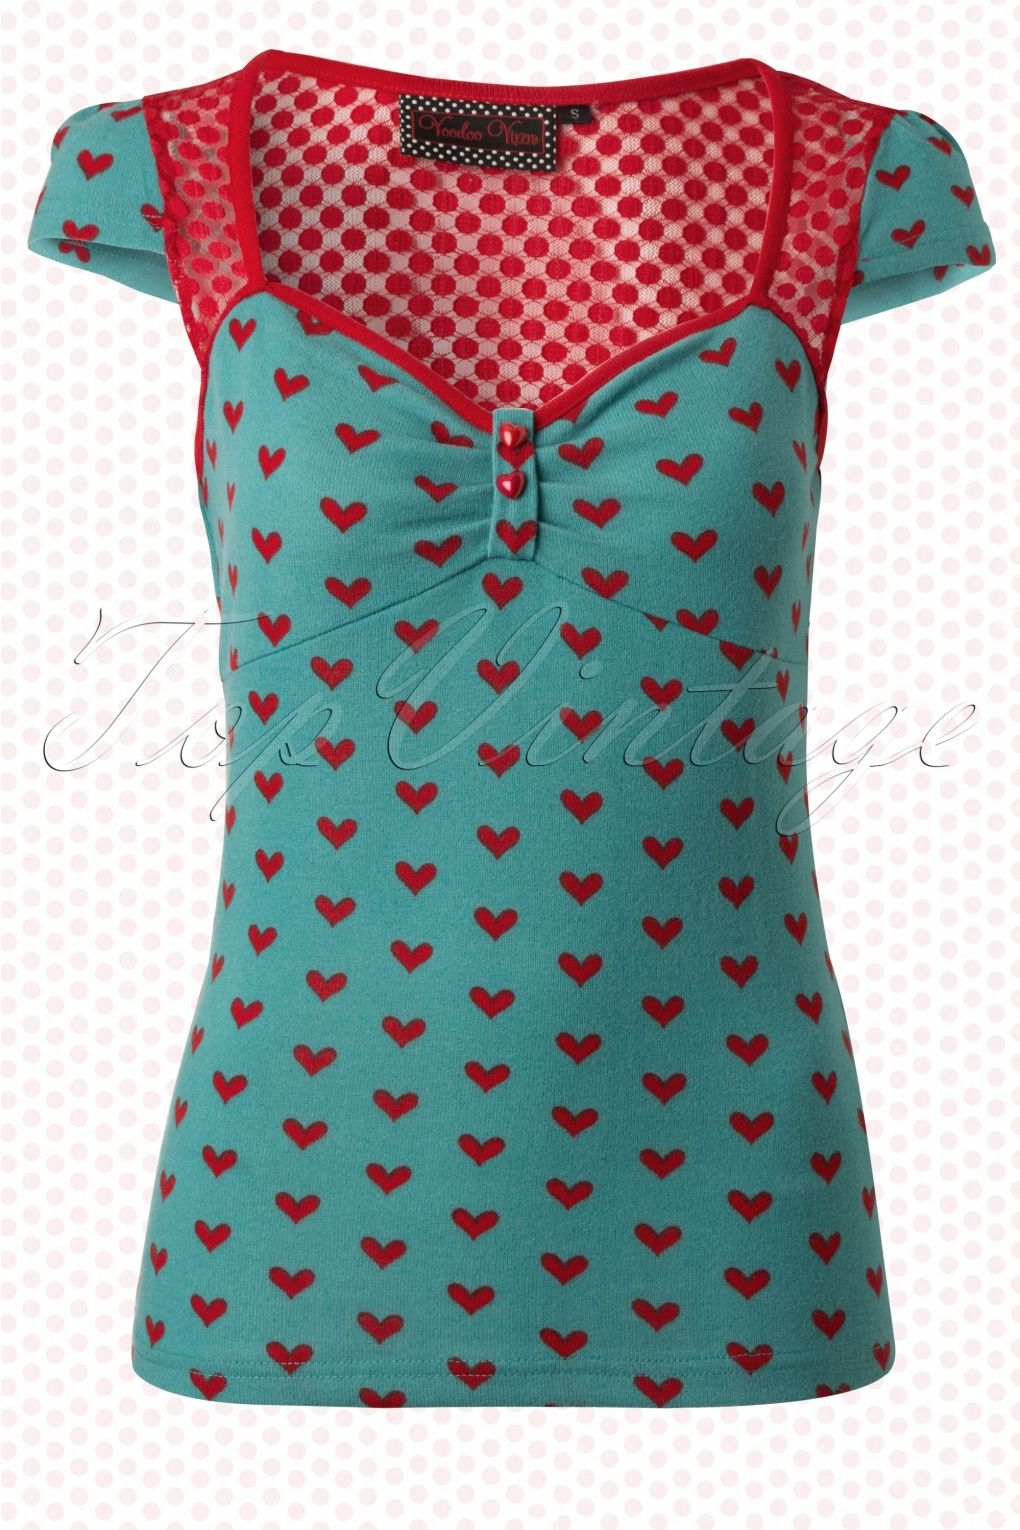 7c7f0ee63148a6 Blue Belle Vintage Top with Hearts | Rockabilly and Vintage clothing ...